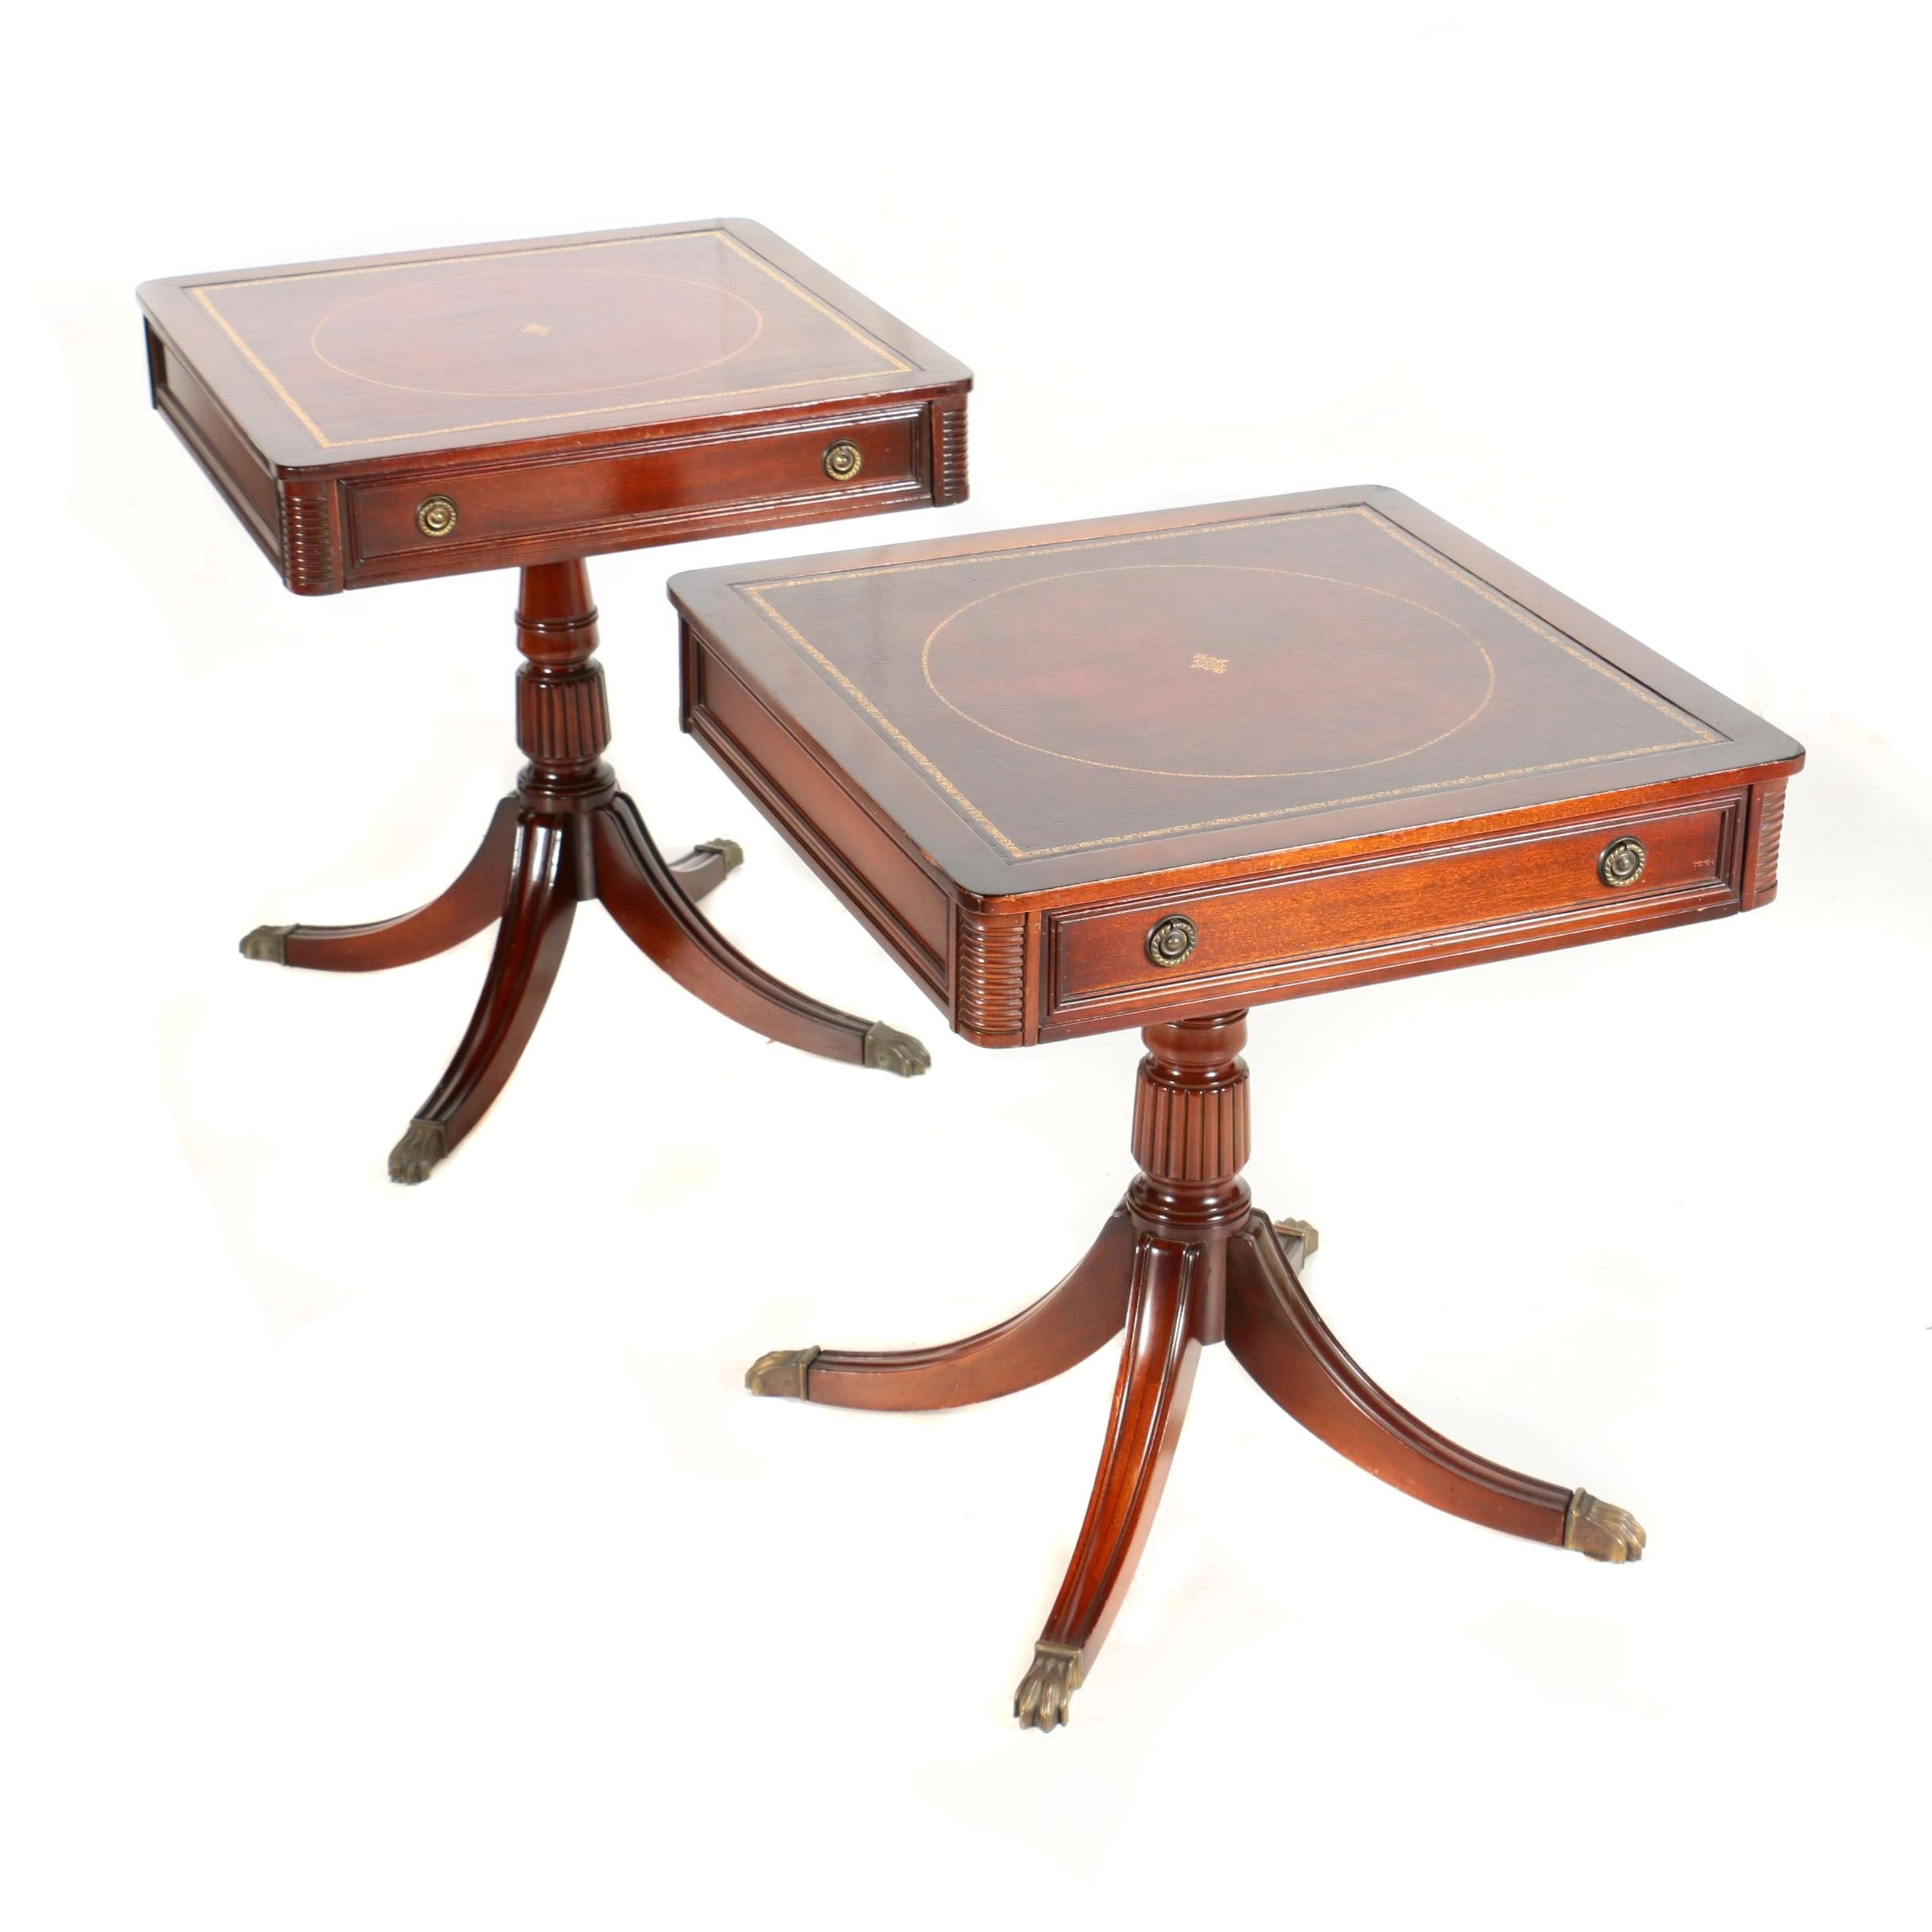 Regency Style Mahogany and Leather Side Tables by Gordon's, 20th Century